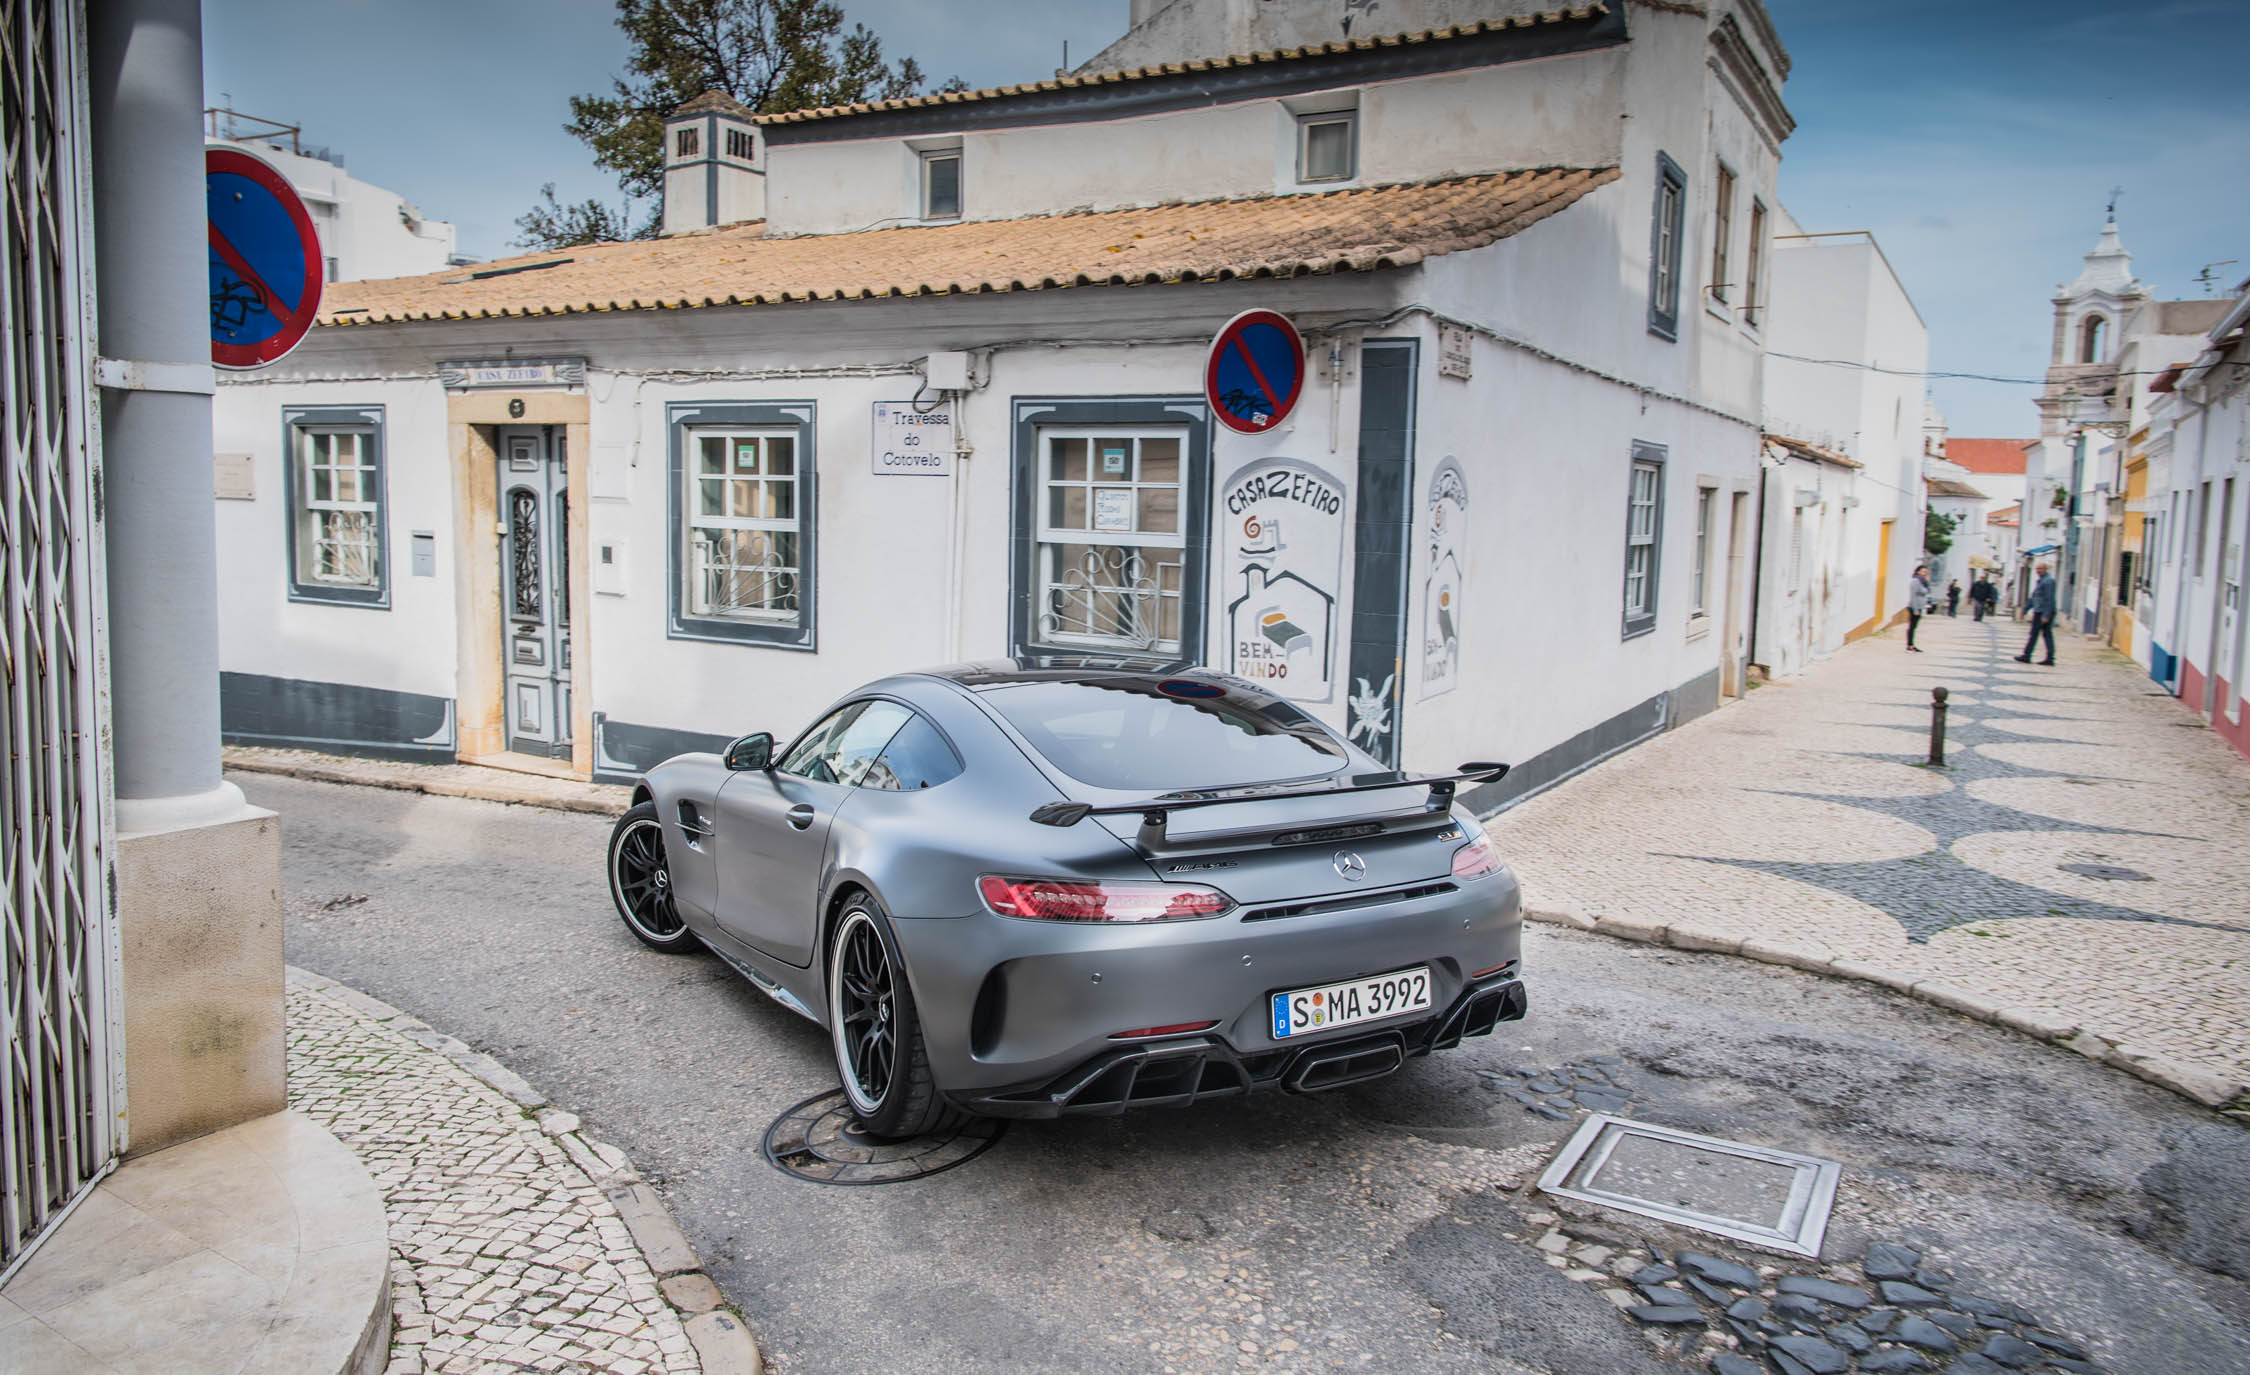 2018 Mercedes AMG GT R Exterior Grey Metallic Rear View (Photo 10 of 36)